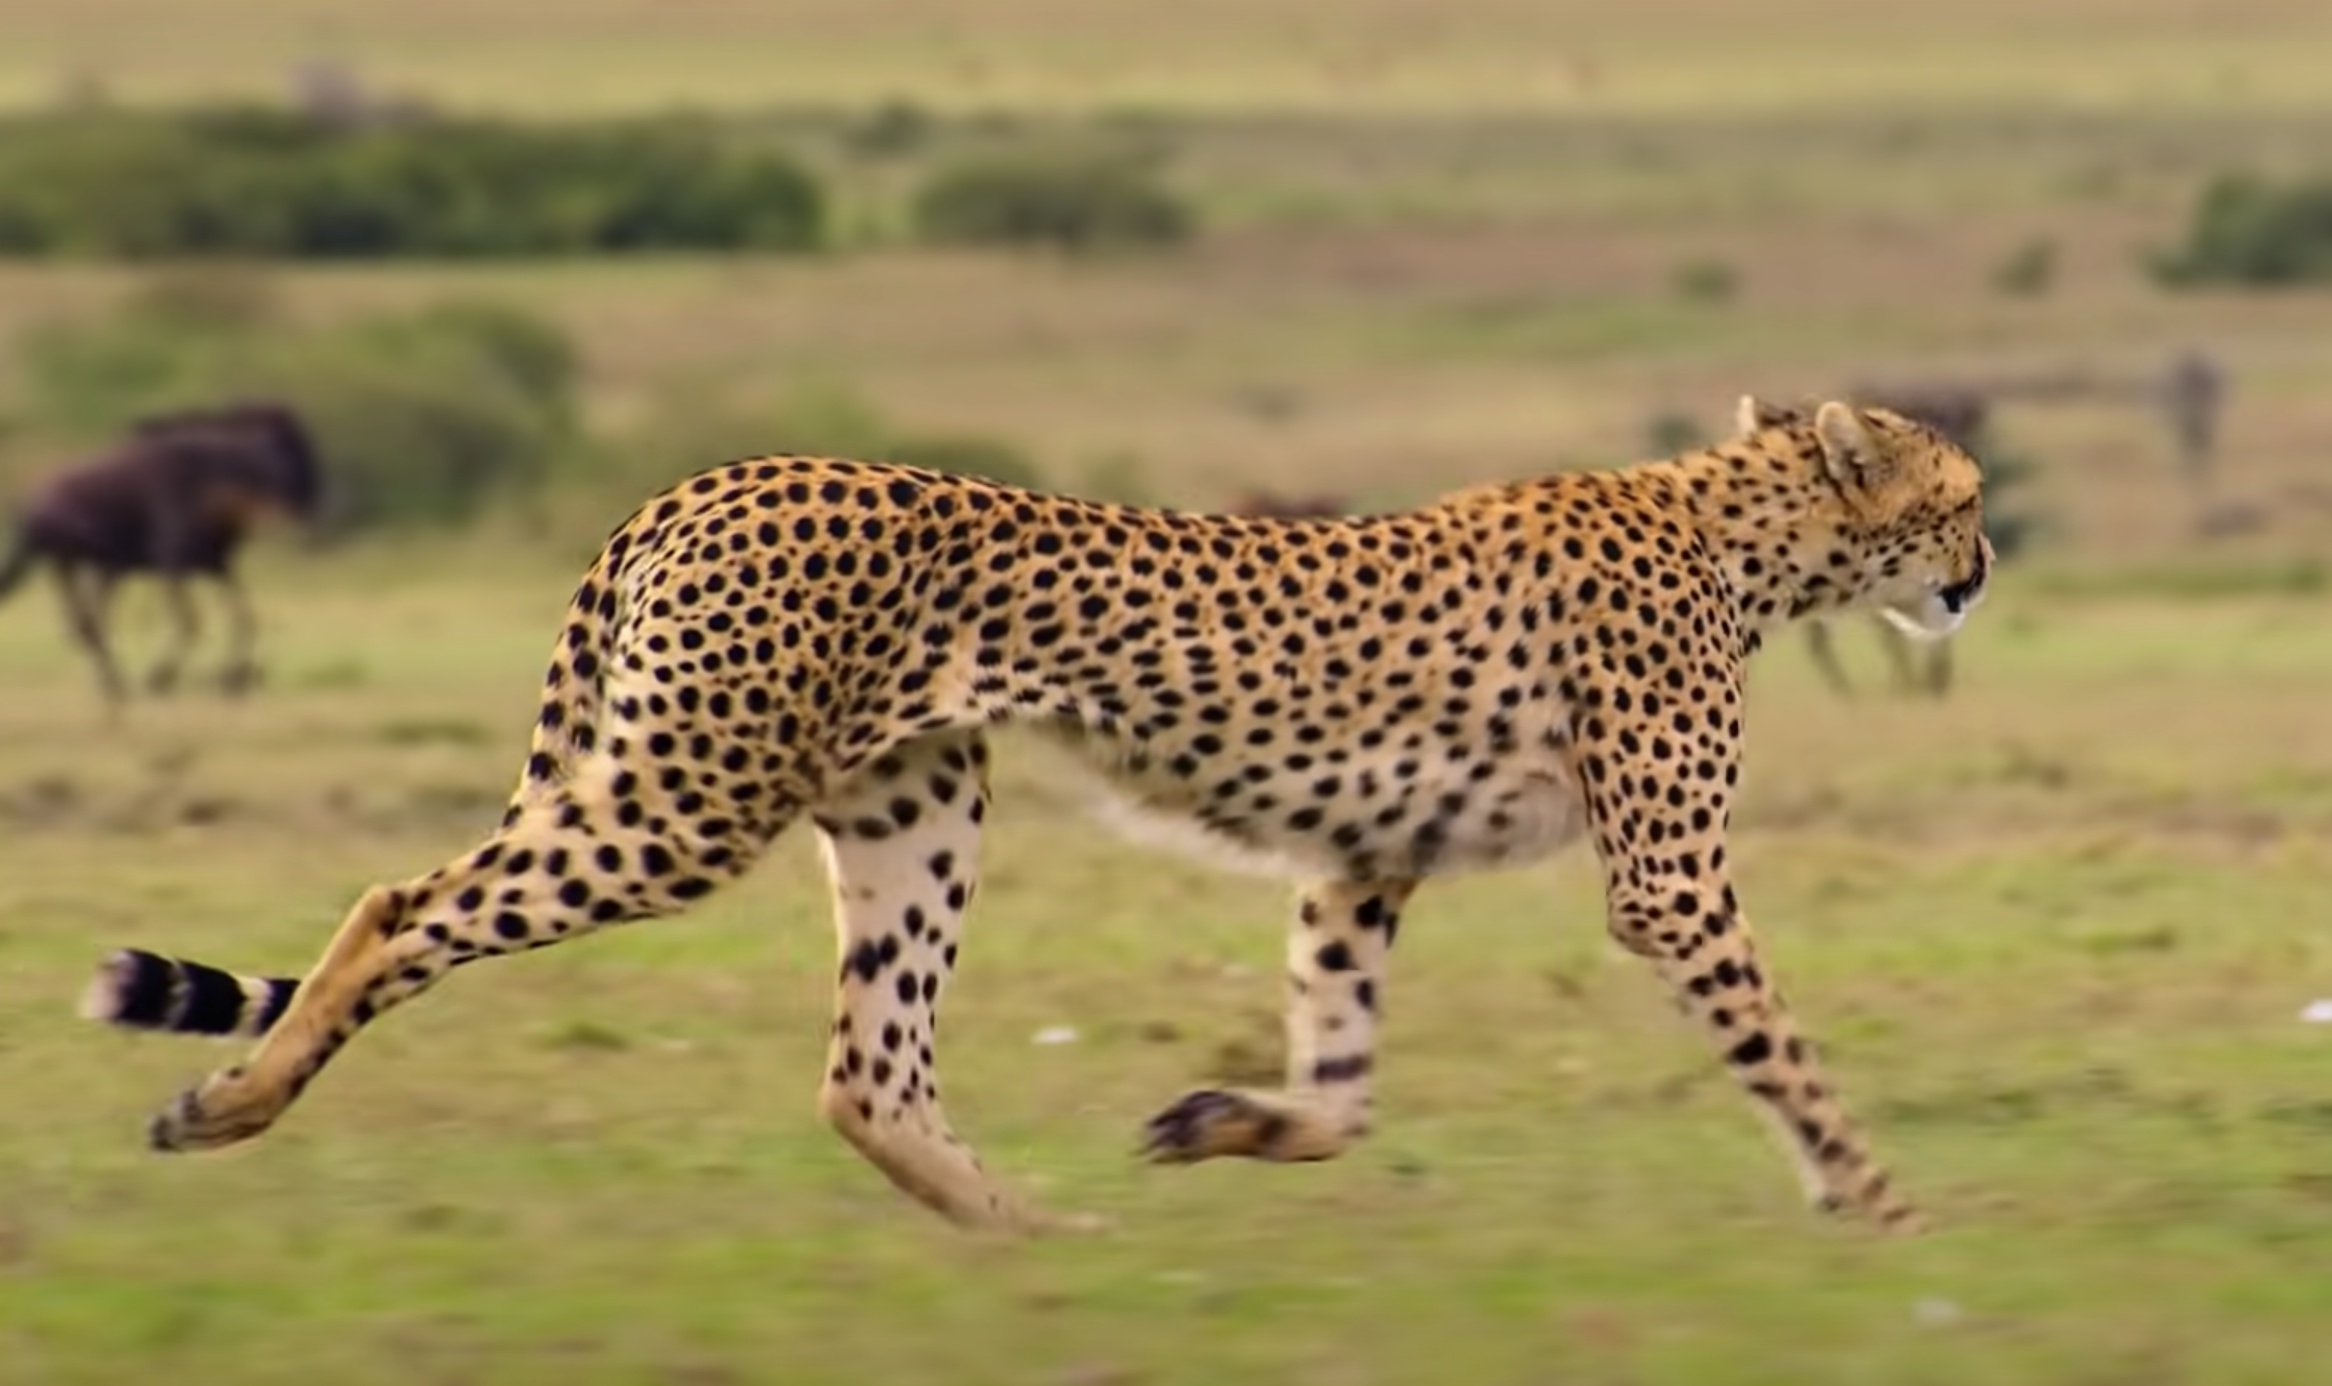 A cheetah roaming the fields in Africa